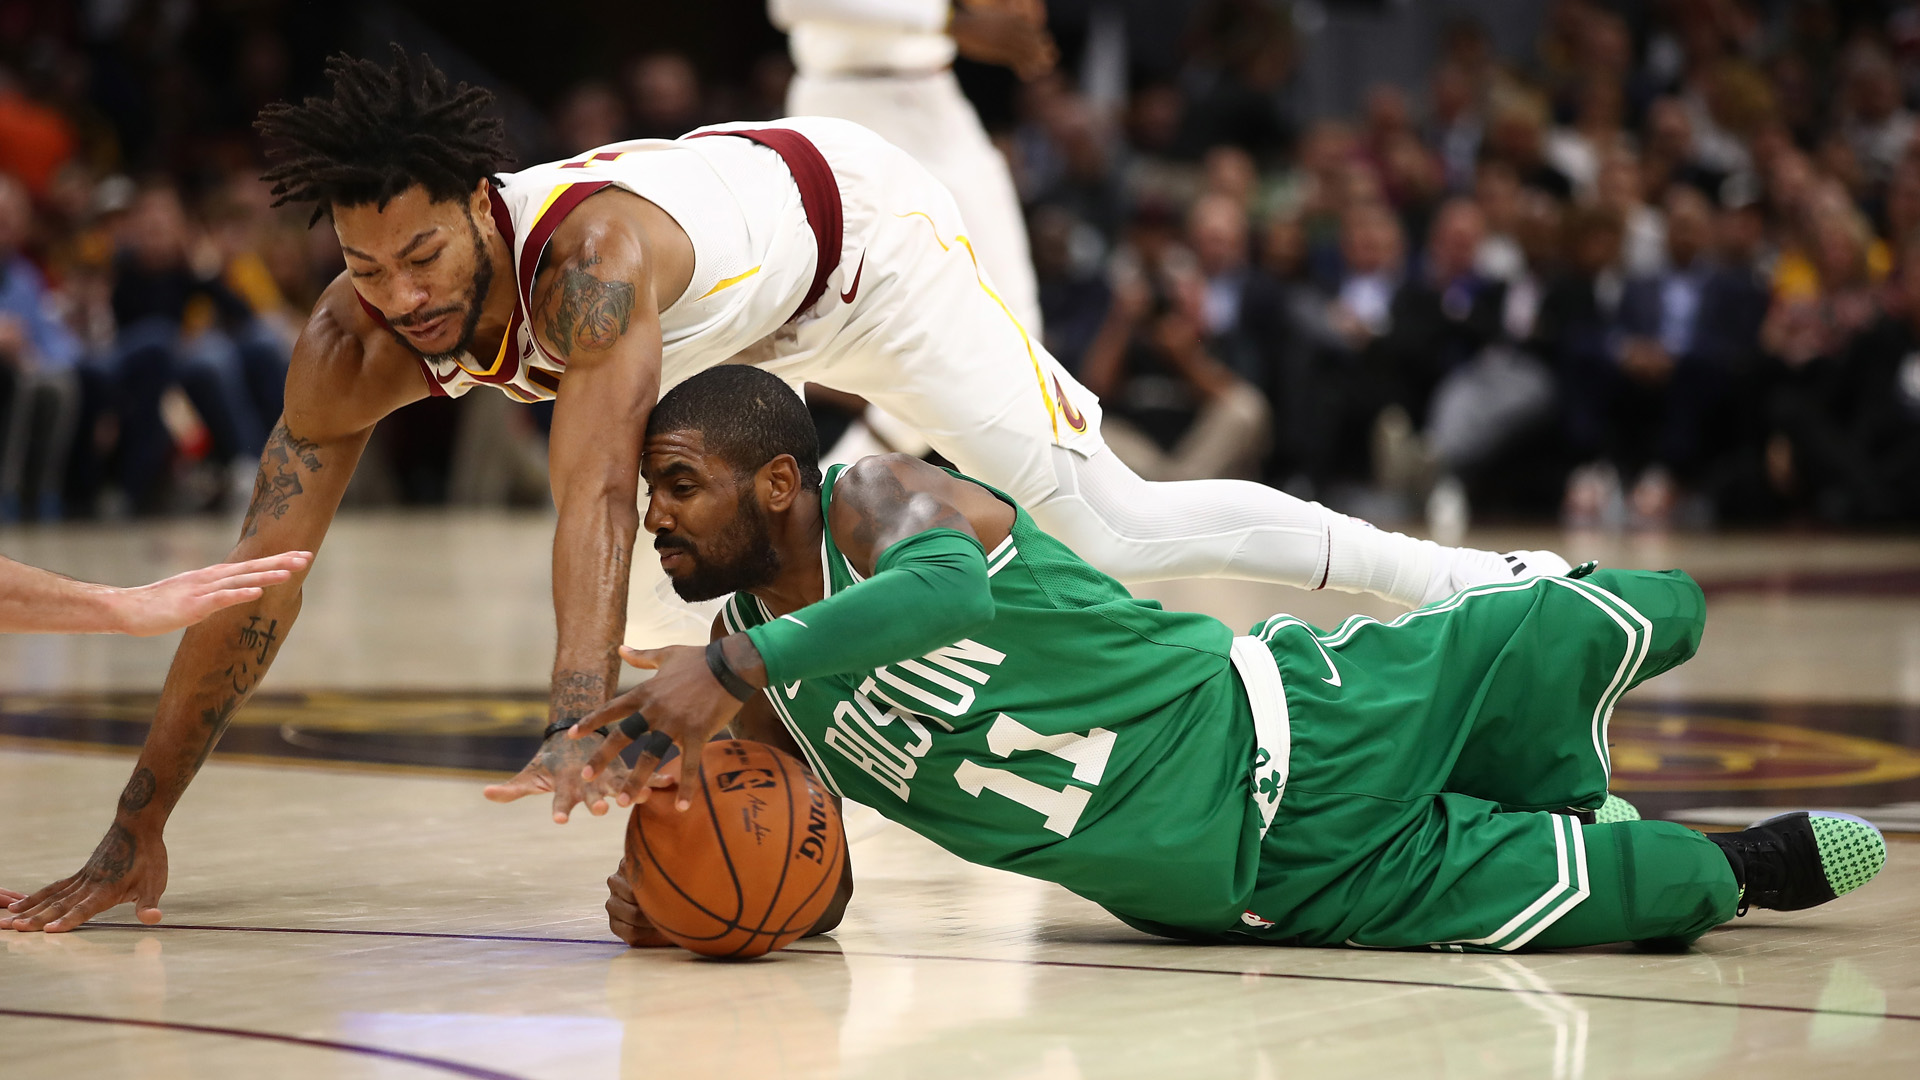 Kyrie-irving-right-and-derrick-rose-left_18w6iusht64x718ad85du7apt6